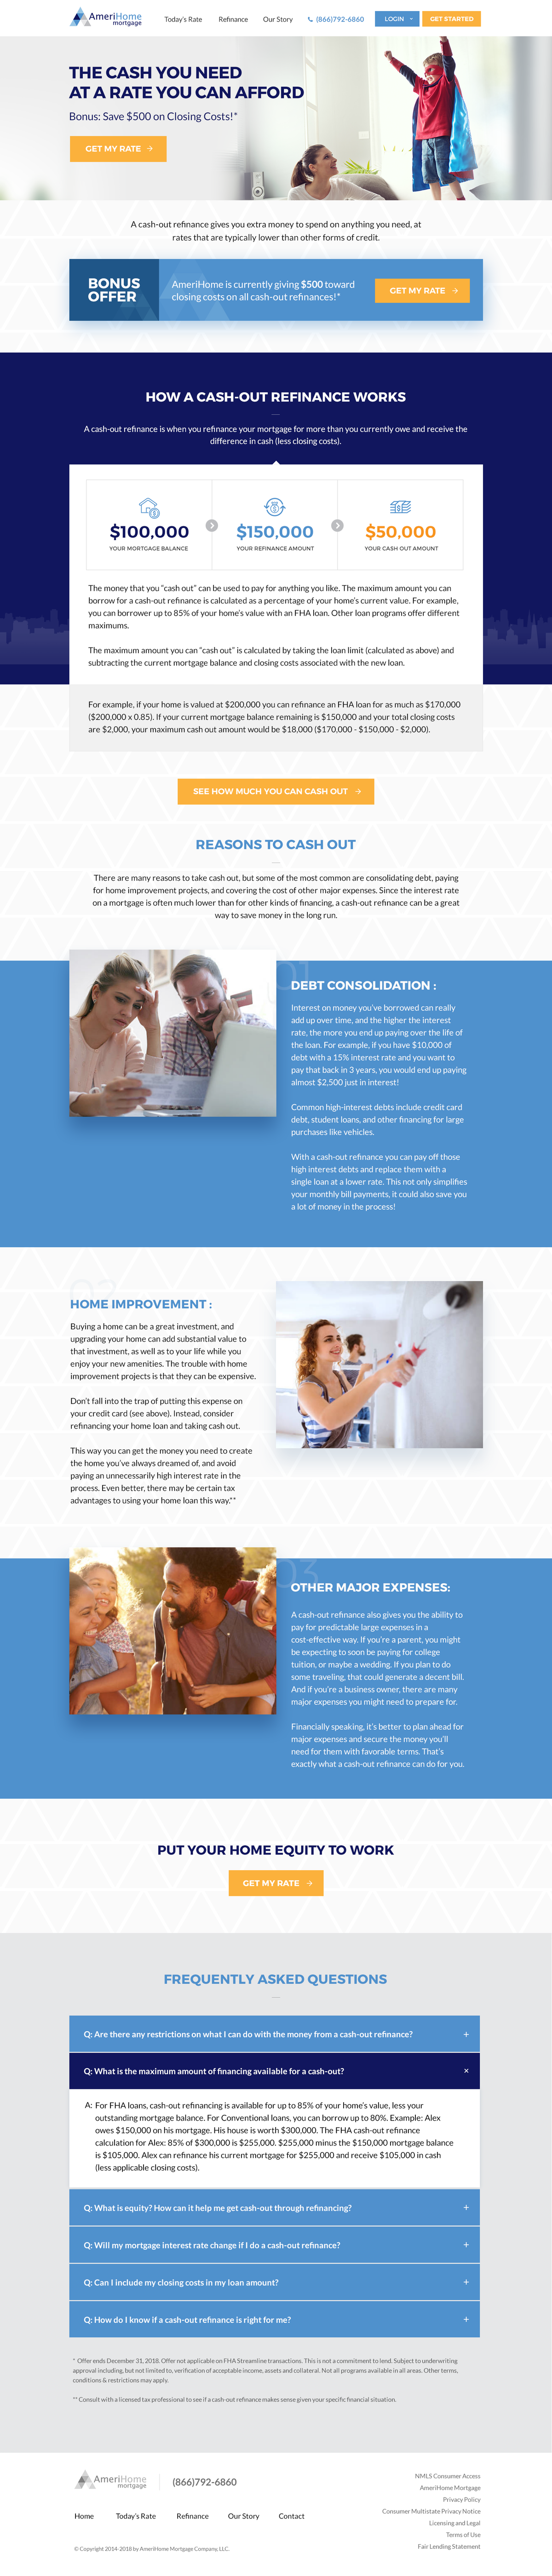 Landing page for mortgage lender.